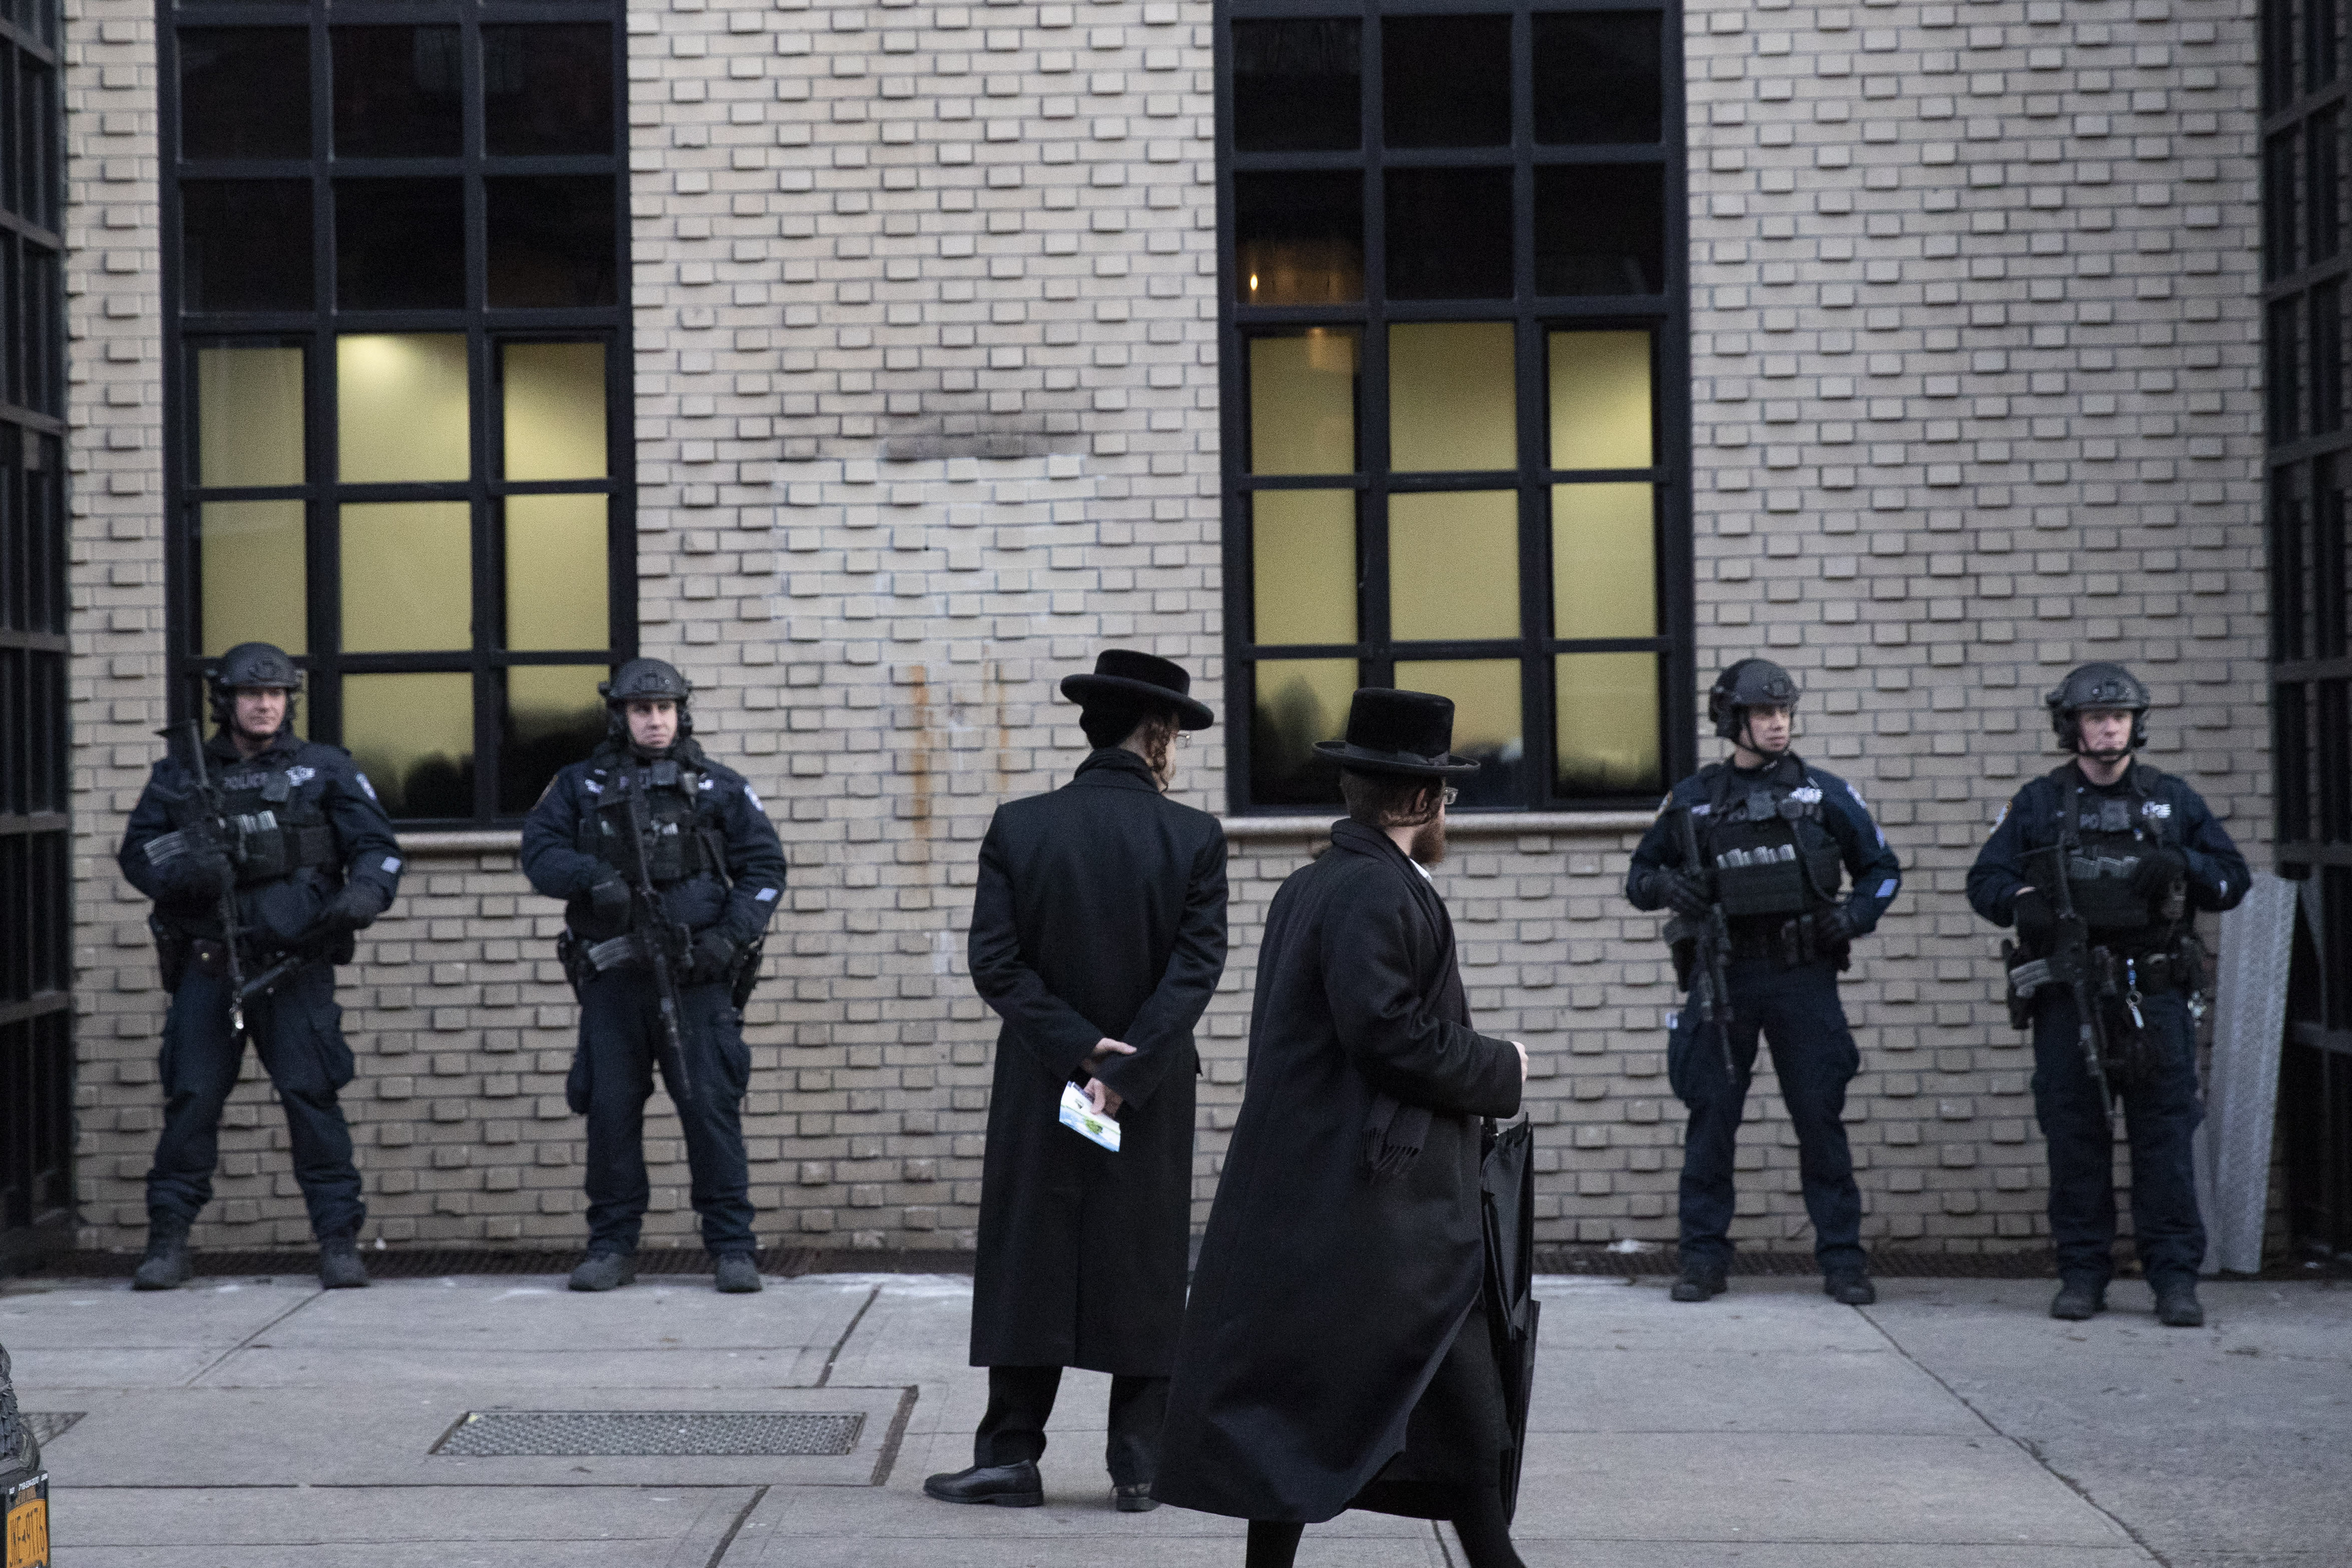 Orthodox Jewish men pass New York City police guarding a Brooklyn synagogue prior to a funeral for Mosche Deutsch, Wednesday, Dec. 11, 2019 in New York. Deutsch, a rabbinical student from Brooklyn, was killed Tuesday in the shooting inside a Jersey City, N.J. market. (AP Photo/Mark Lennihan)